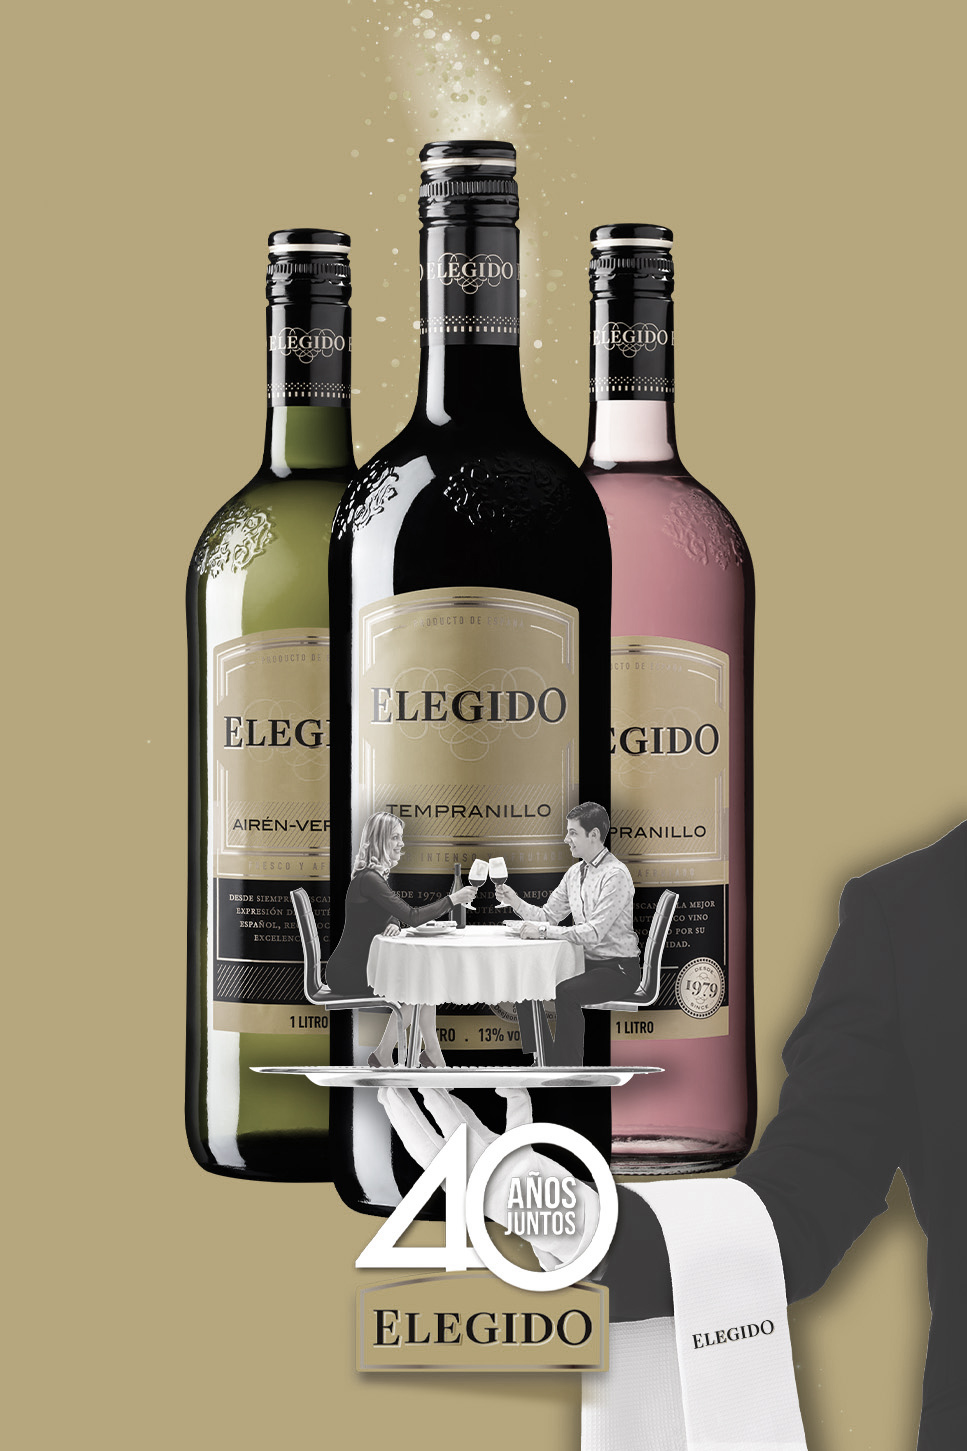 Elegido – End of the 40th anniversary | Reserva de la Tierra